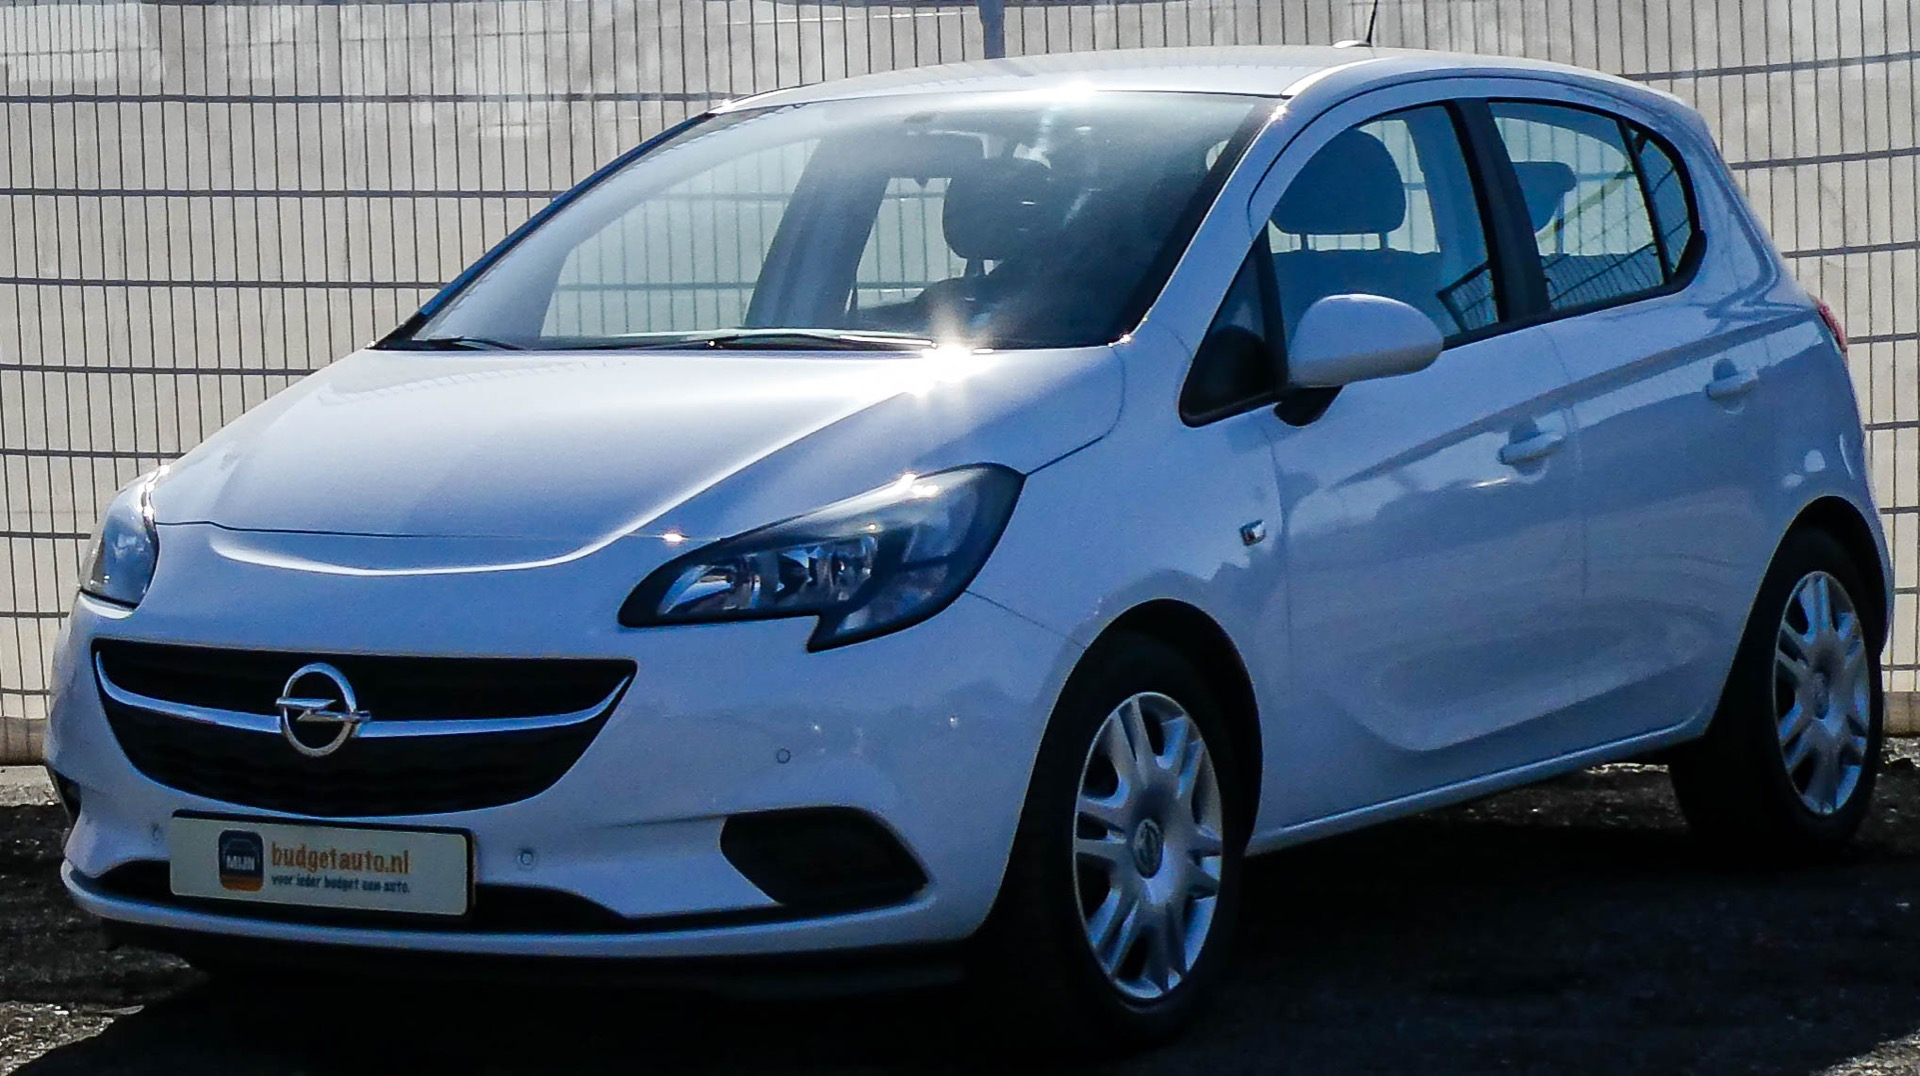 Opel Corsa 1.0 TURBO Edition (5-drs)